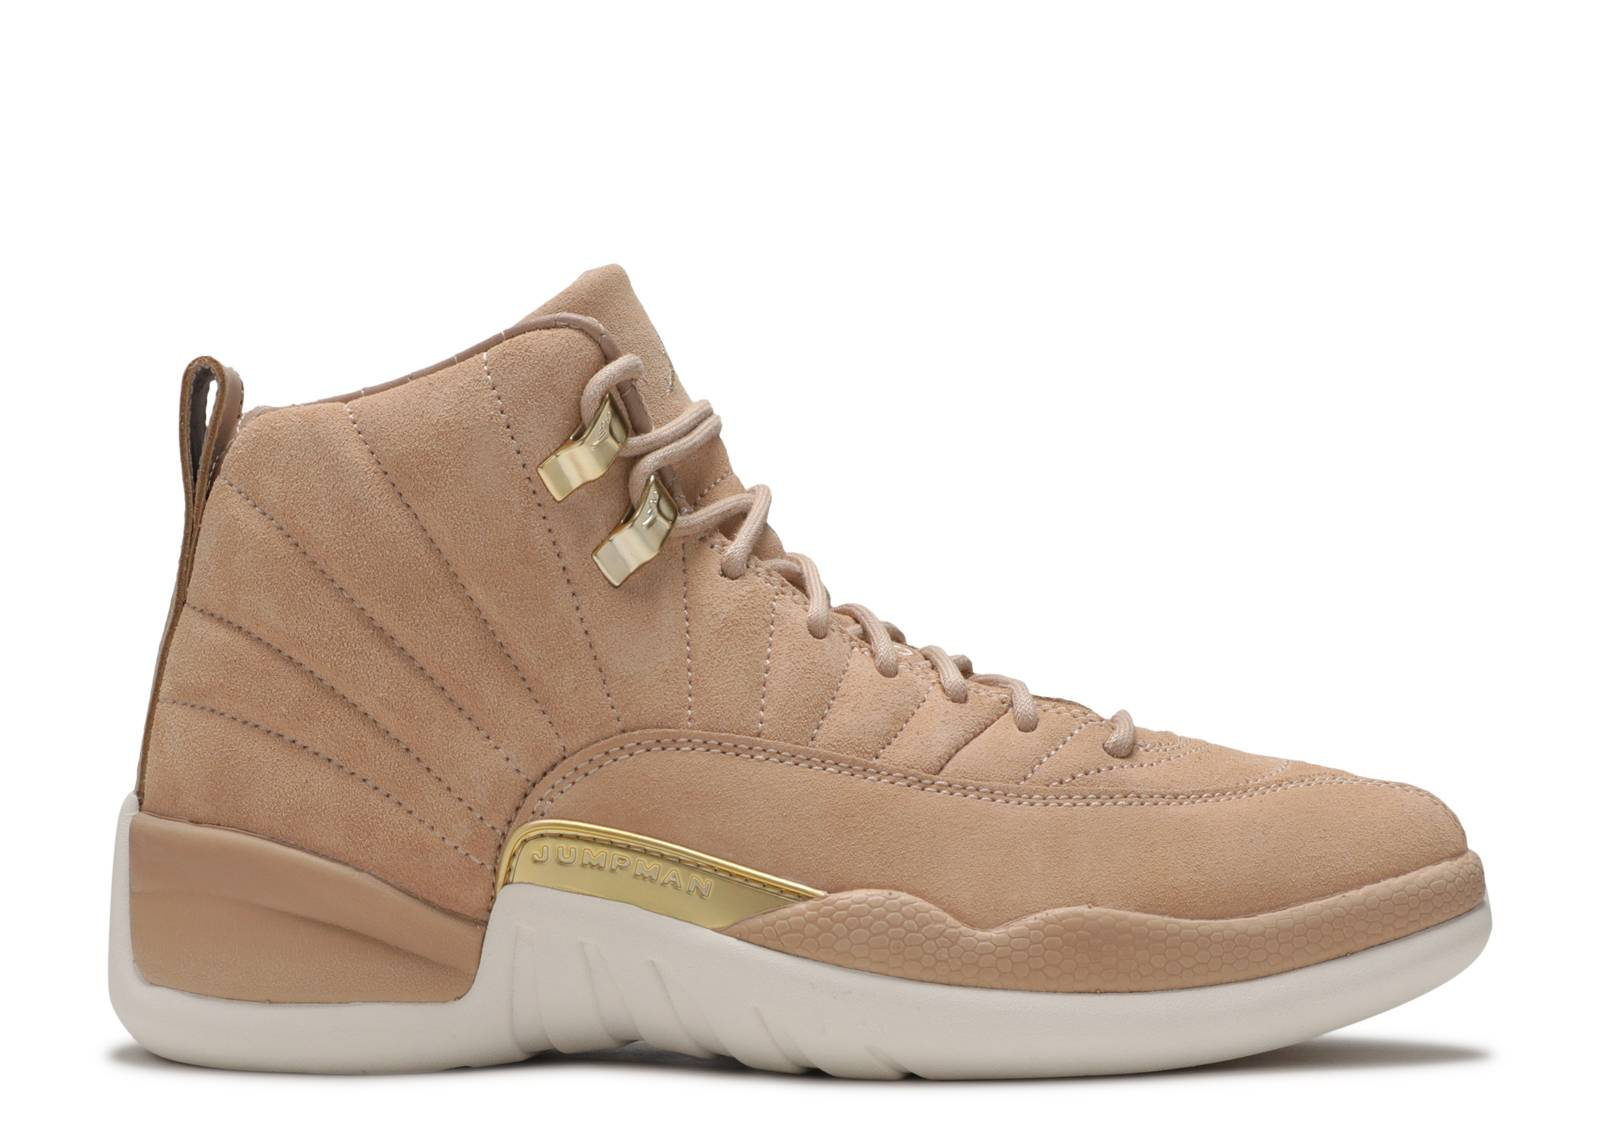 check out 4e654 3021c wmns air jordan 12 reto